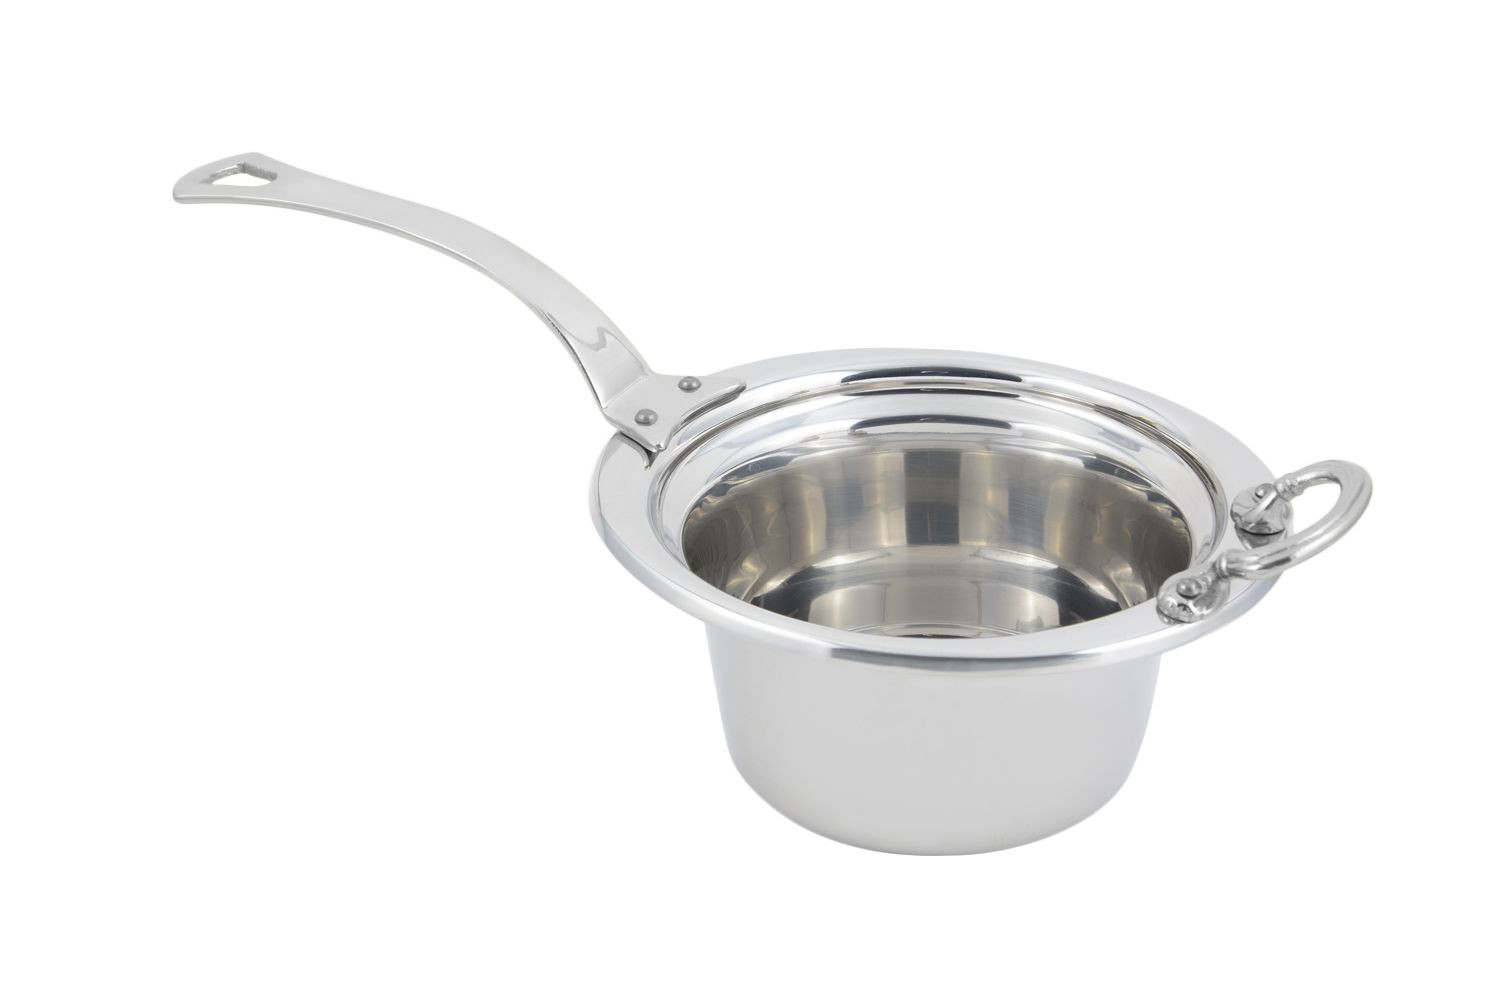 Bon Chef 5250HLSS Plain Design Casserole Dish with Long Stainless Steel Handle, 2 Qt.